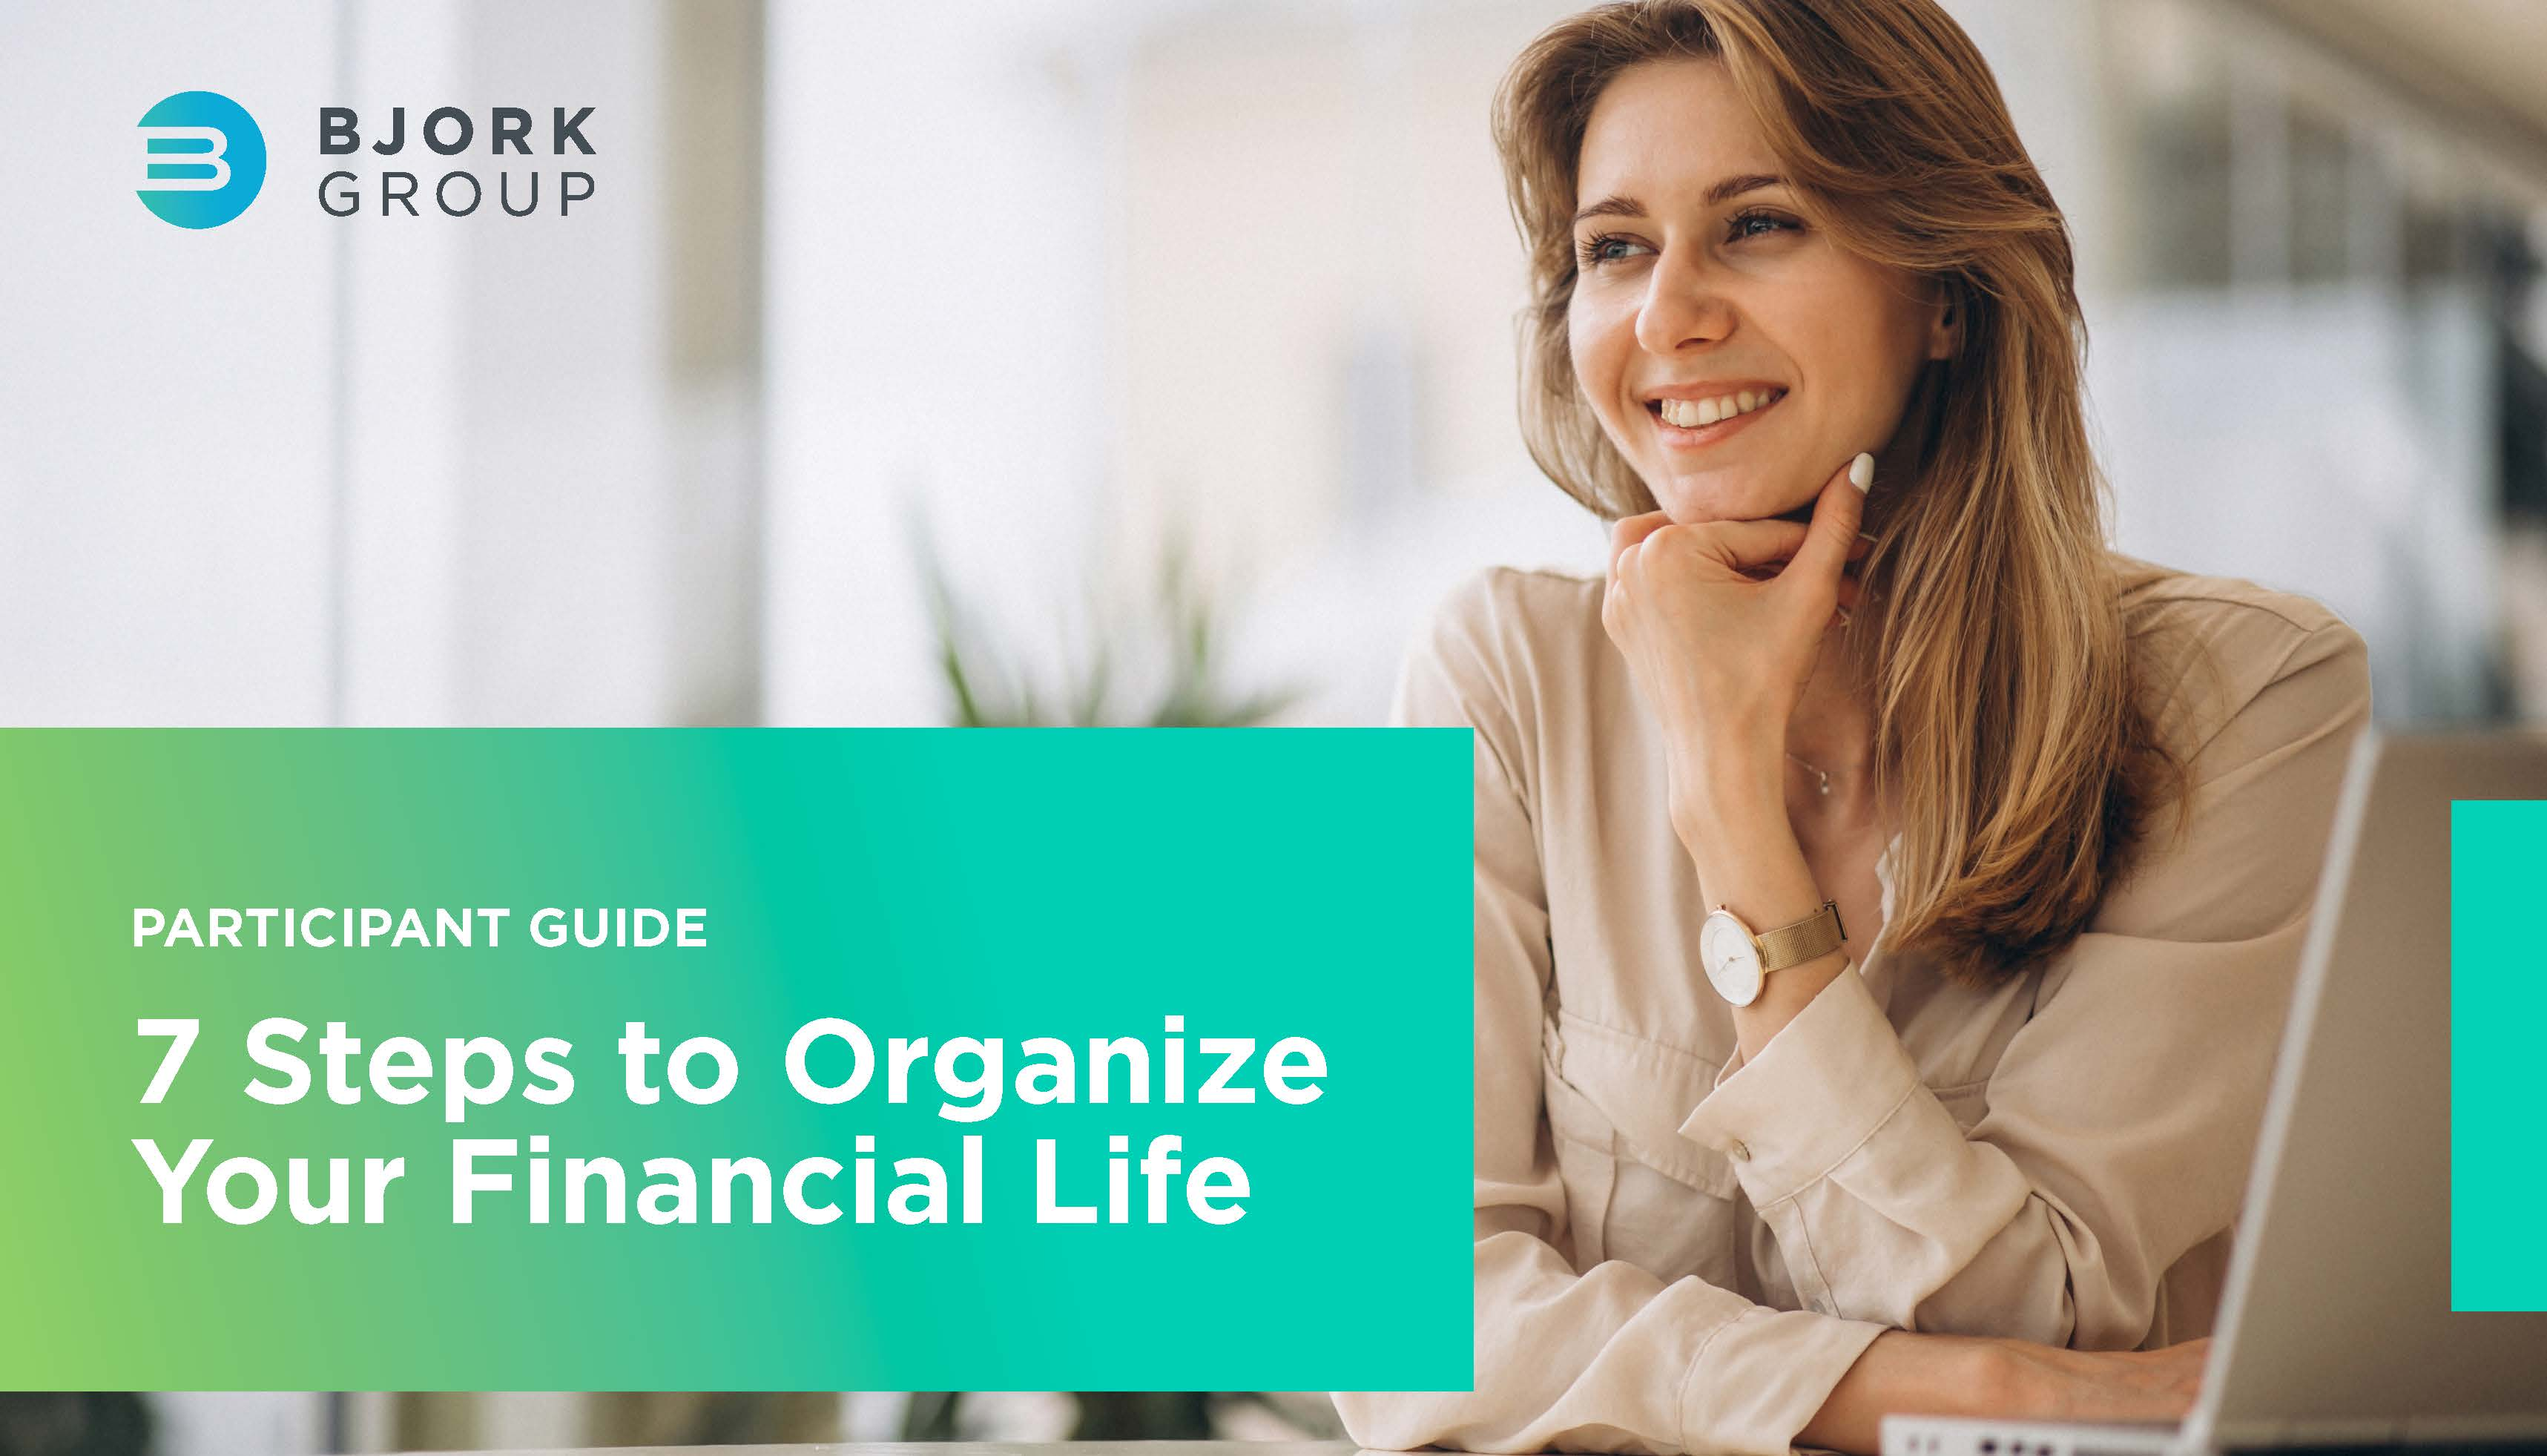 Headline Image - 7 Steps to Organize Your Financial Life